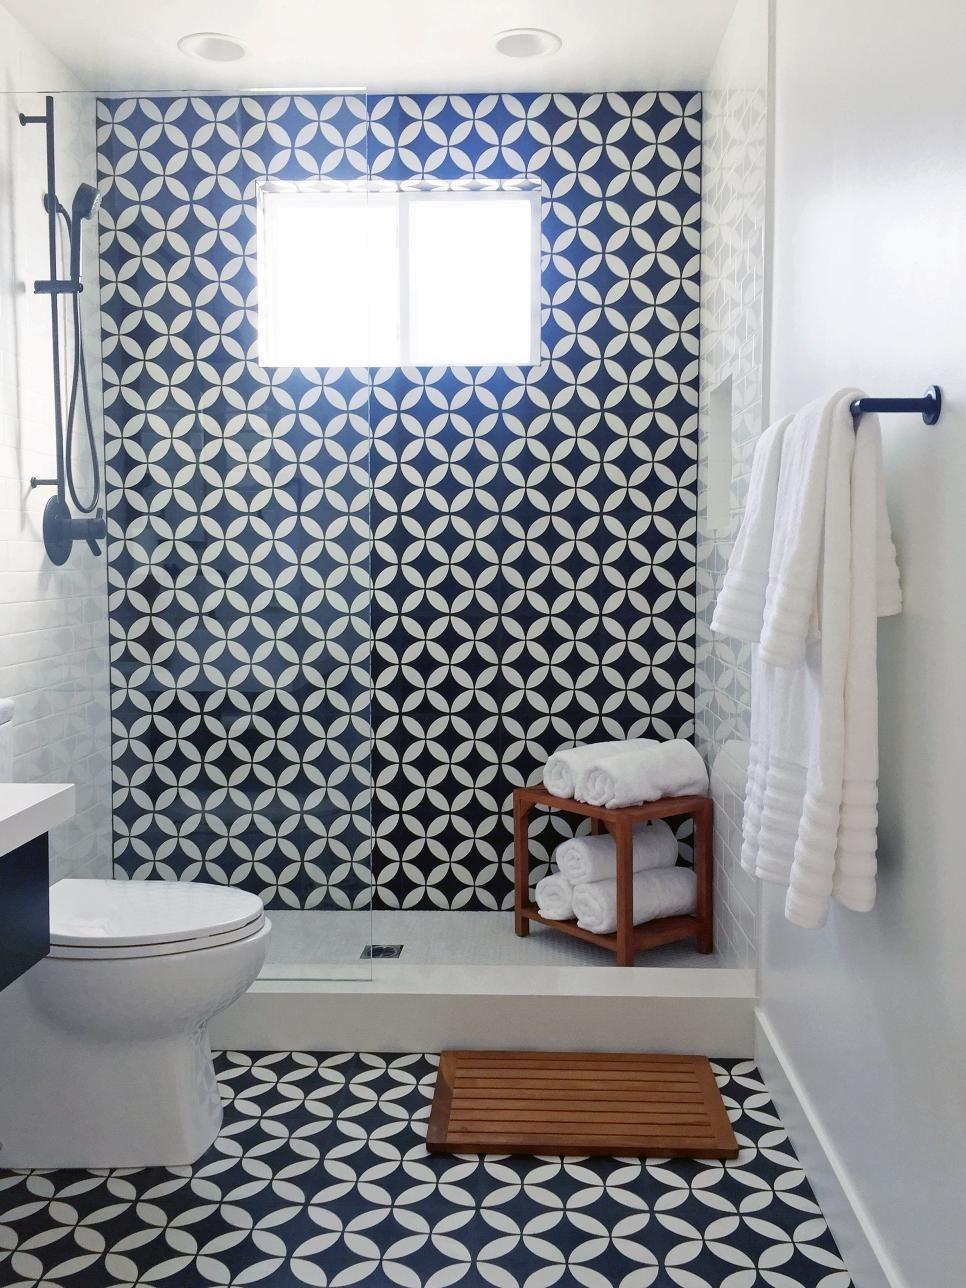 Awesome Blue Patterned Bathroom Tiles Part - 13: Patterned Bathroom Tiles Small Bathroom With Patterned Black And White Tile